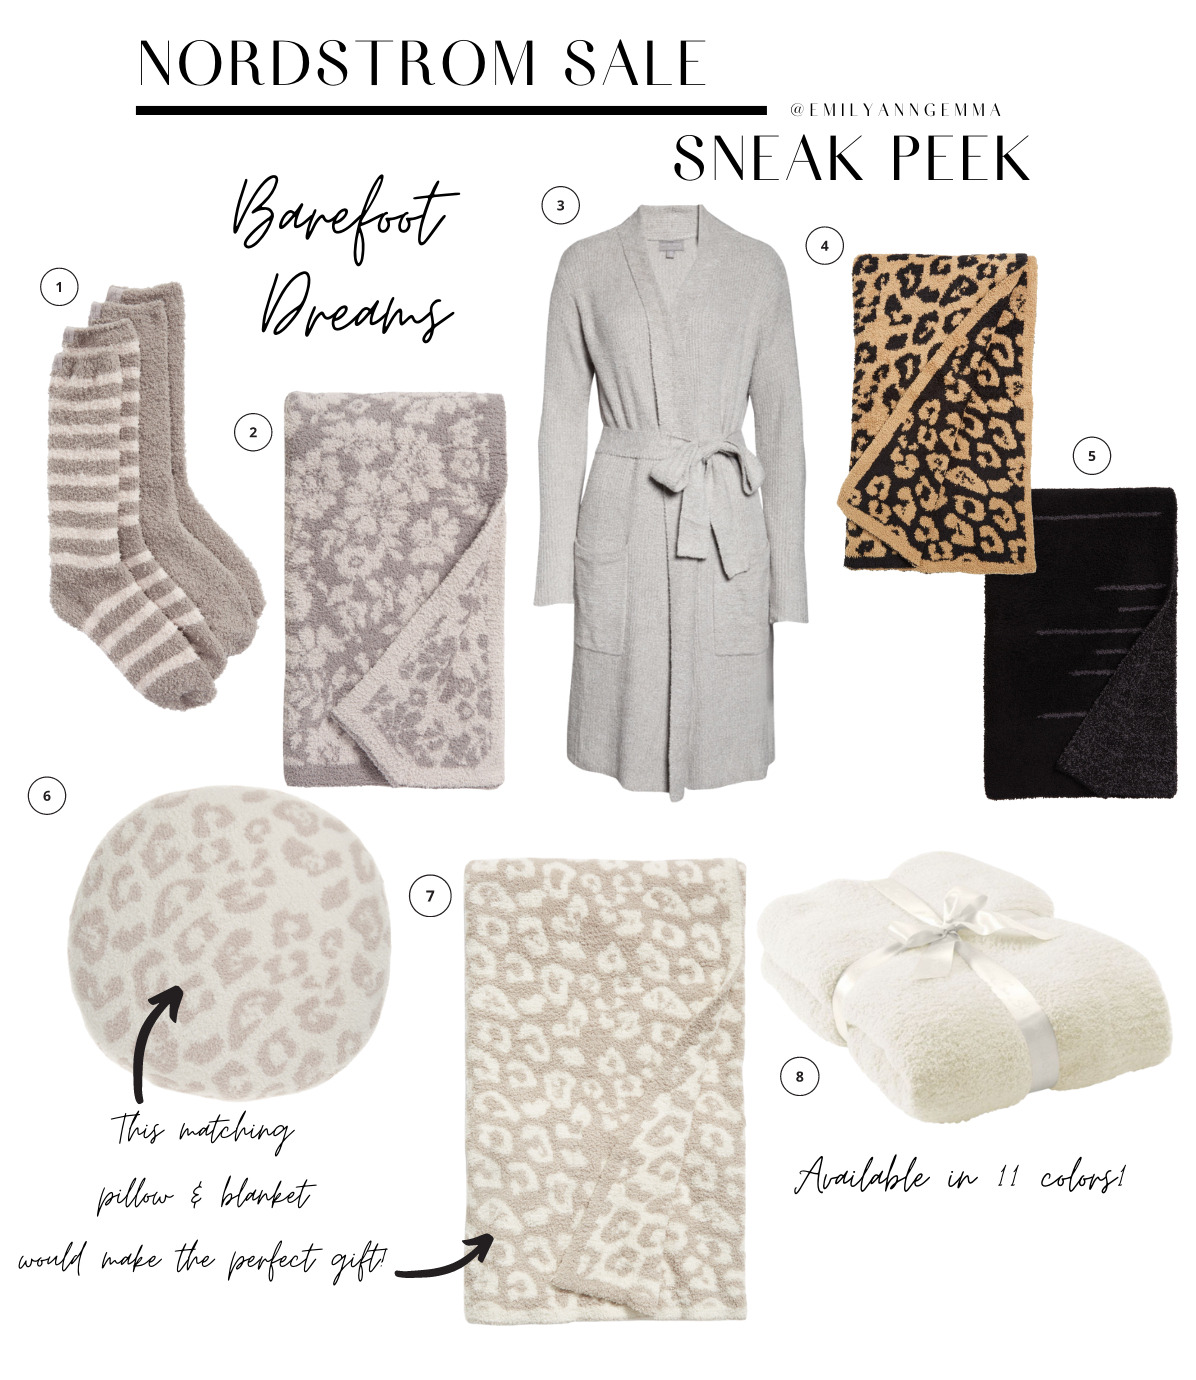 nsale 2021 barefoot dreams, nordstrom anniversary sale 2021 blog posts, nsale preview 2021, emily ann gemma, the sweetest thing blog | Nordstrom Anniversary Sale by popular US fashion blog, The Sweetest Thing: image of various Nordstrom barefoot dreams blanket, Nordstrom Barefoot Dreams Socks, and Nordstrom Barefoot dreams items.